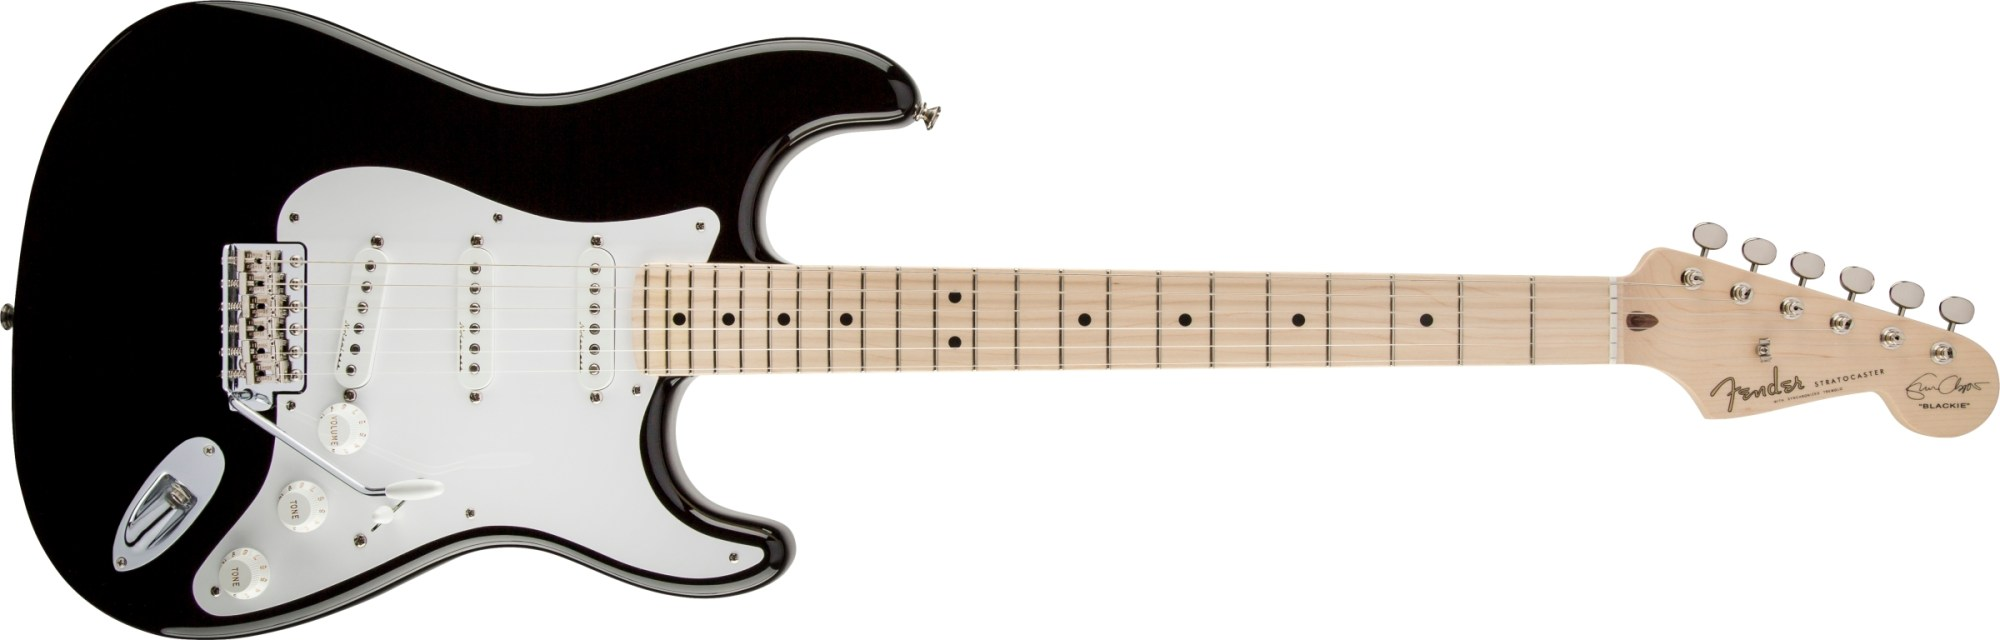 hight resolution of eric clapton stratocaster